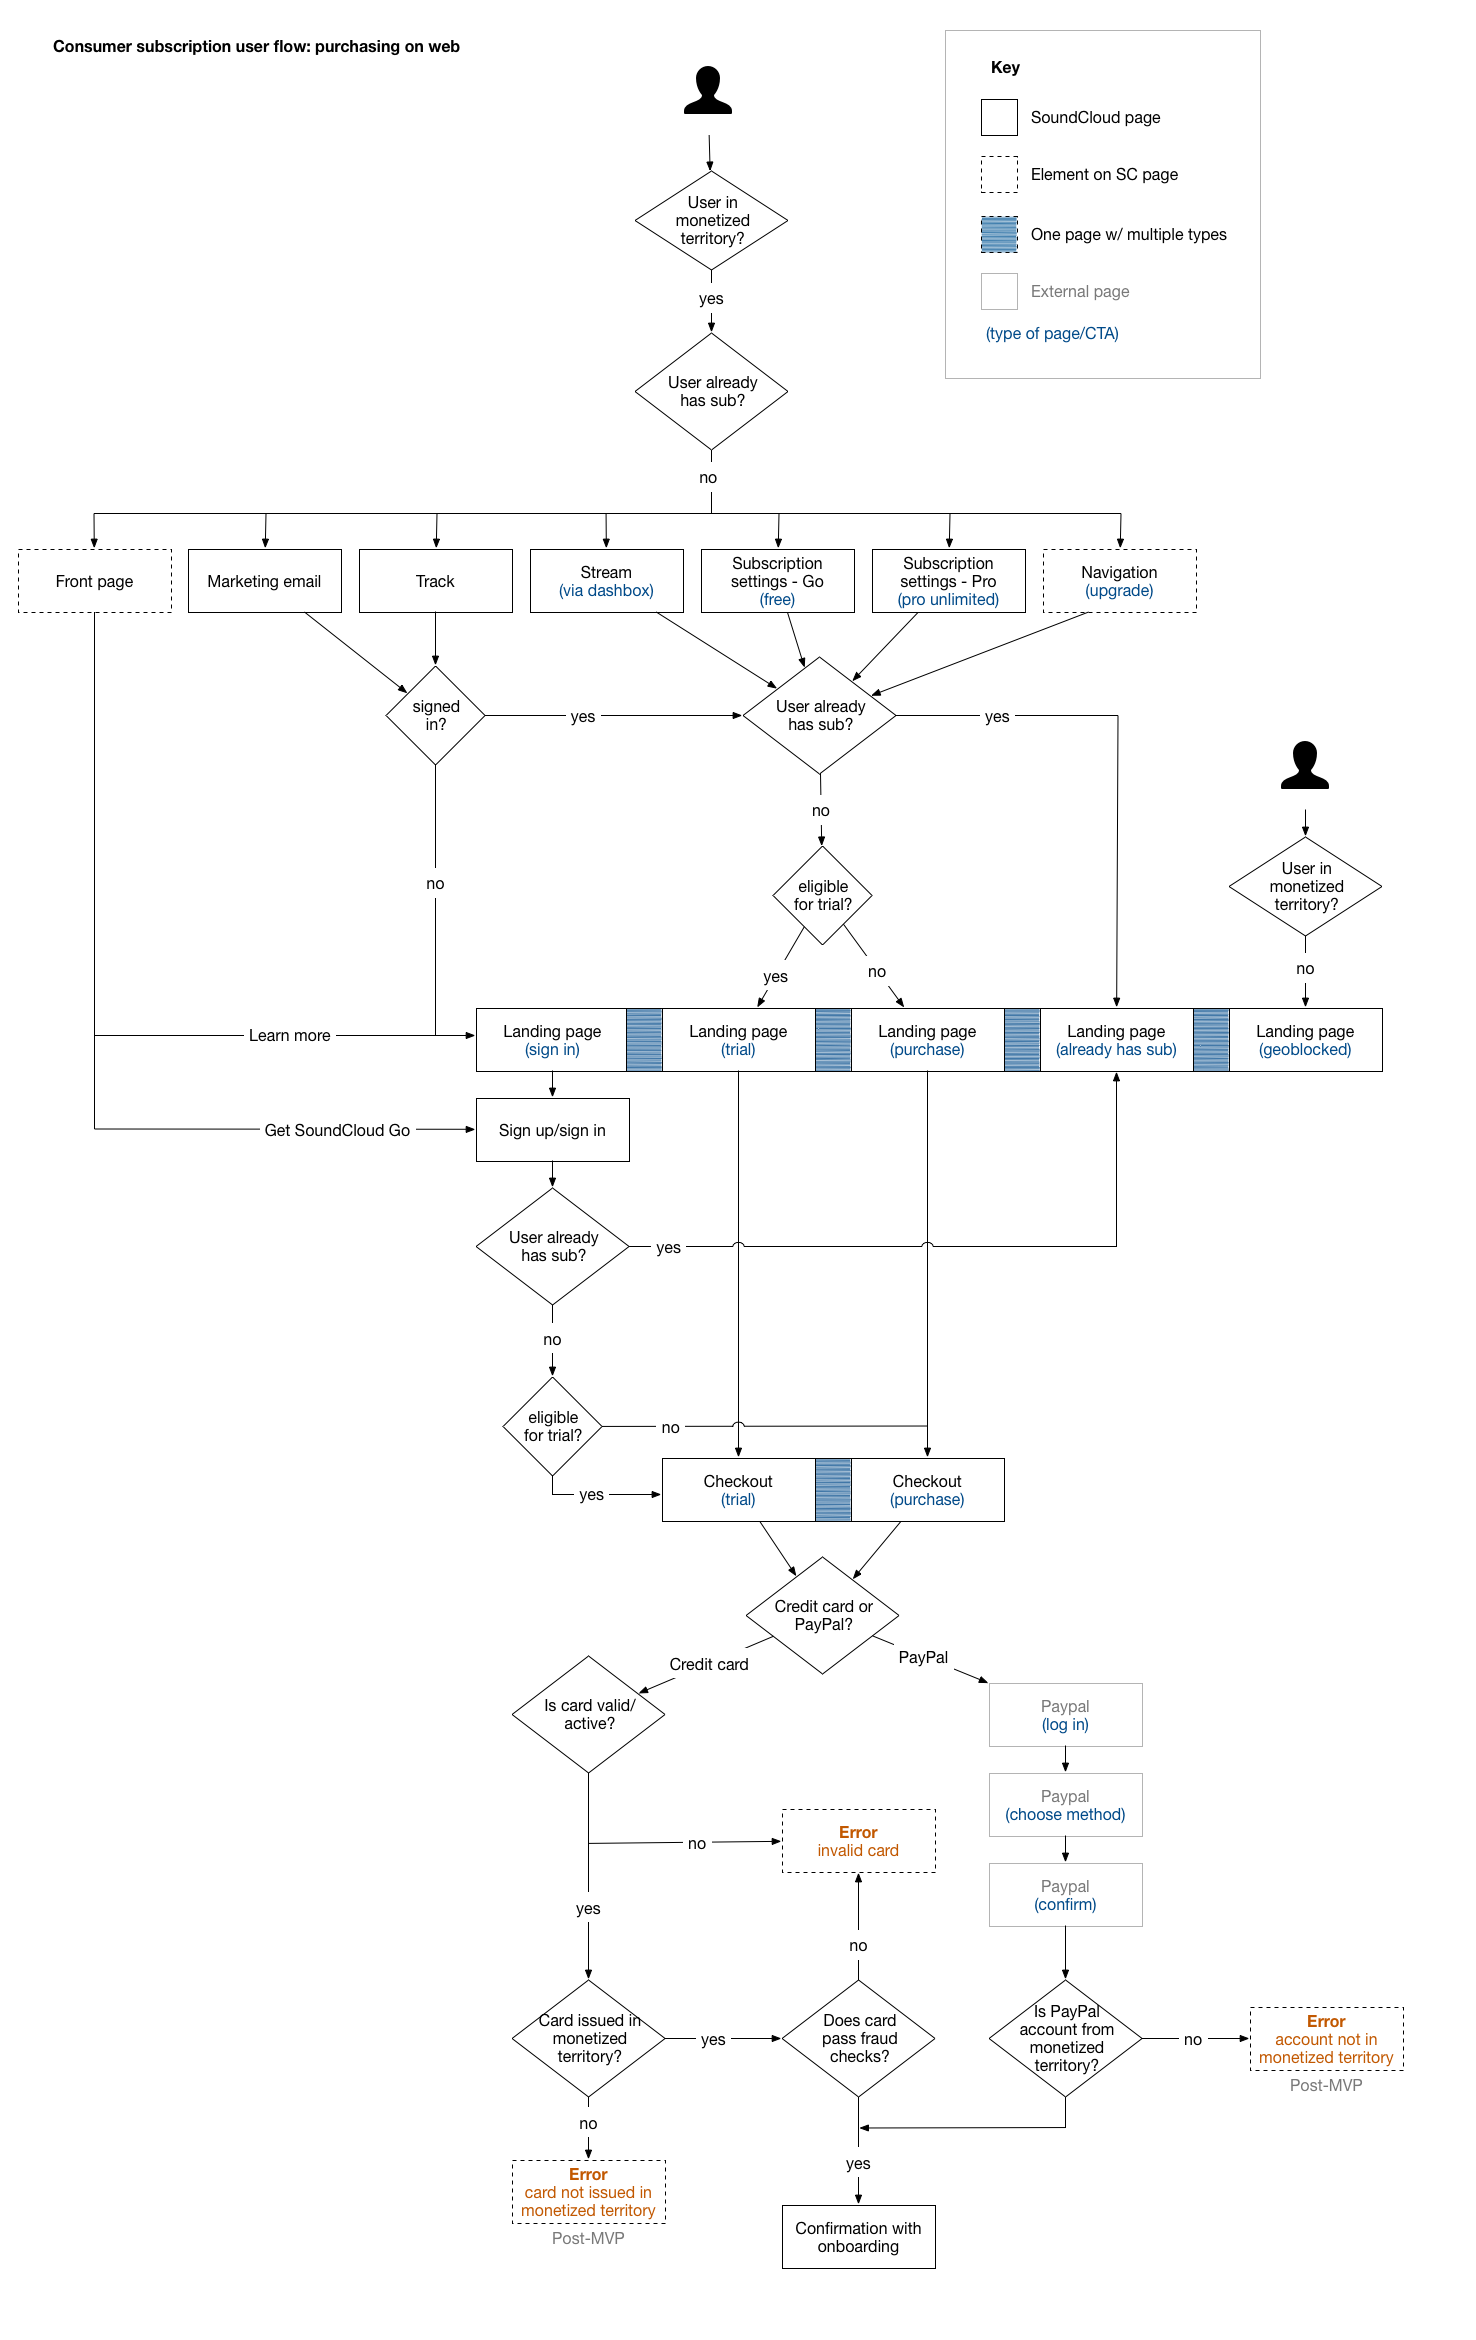 Web purchase user flow.png